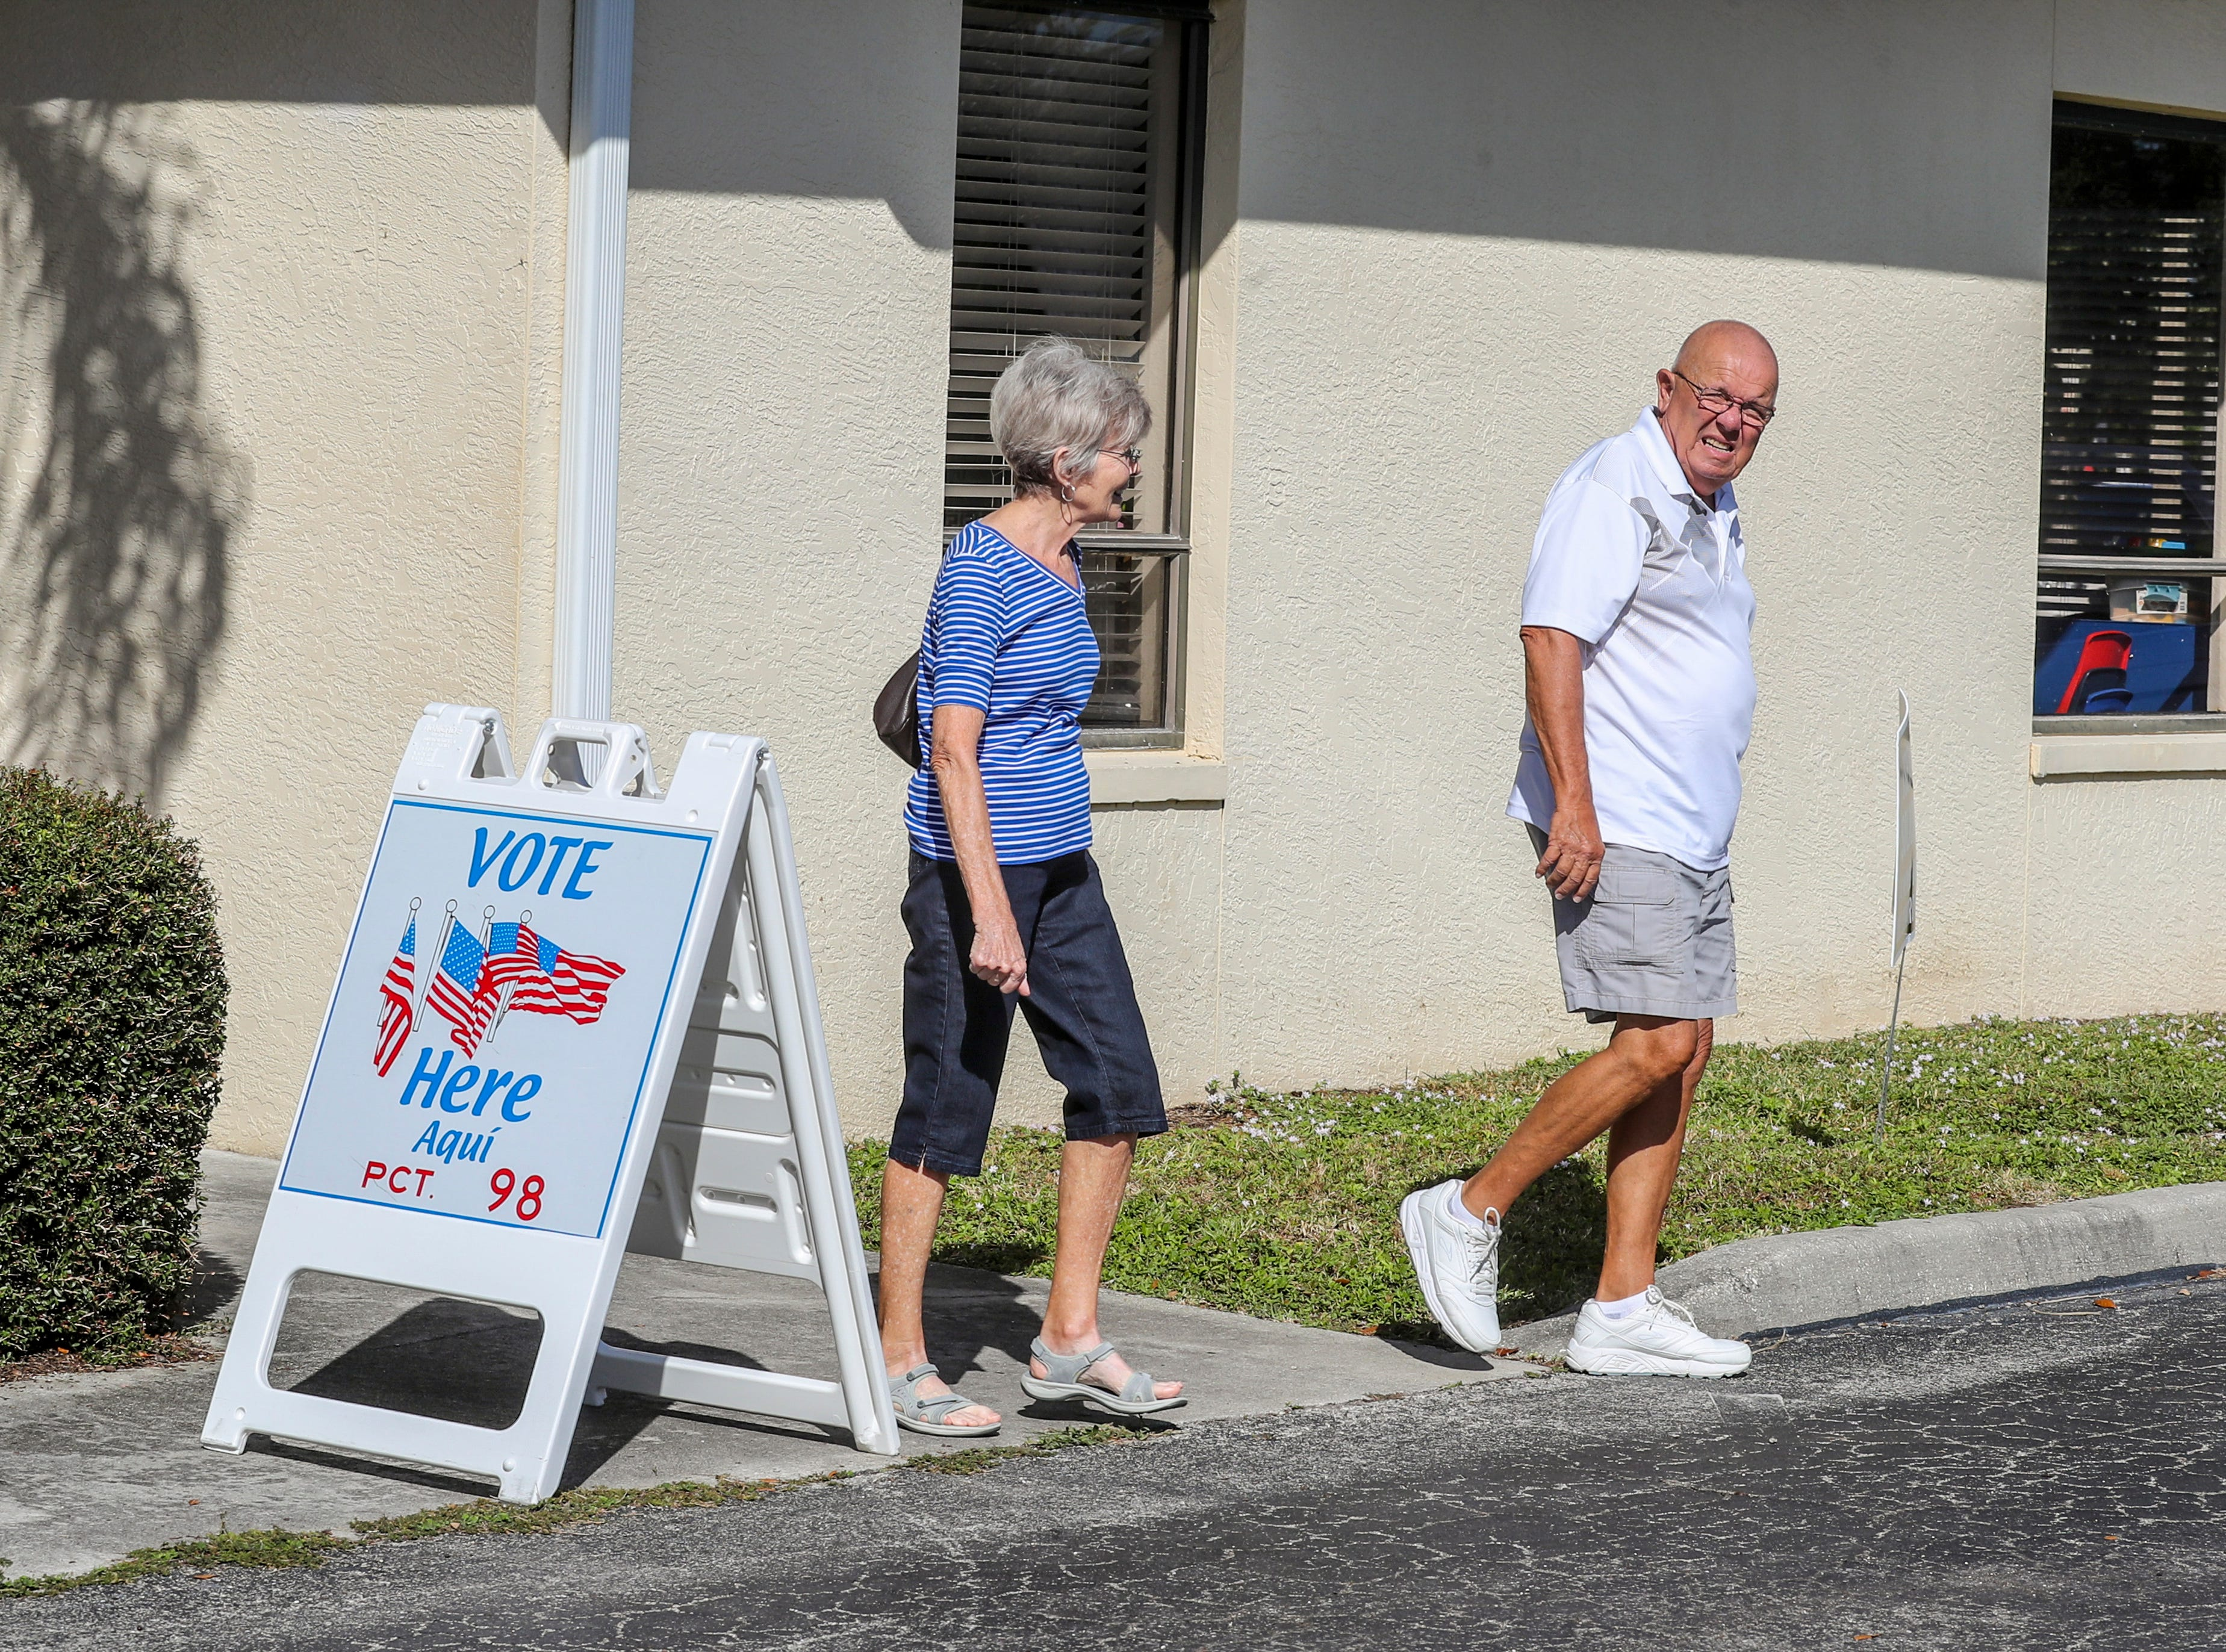 Voters head to their cars after voting at Precinct 98 in Cape Coral.